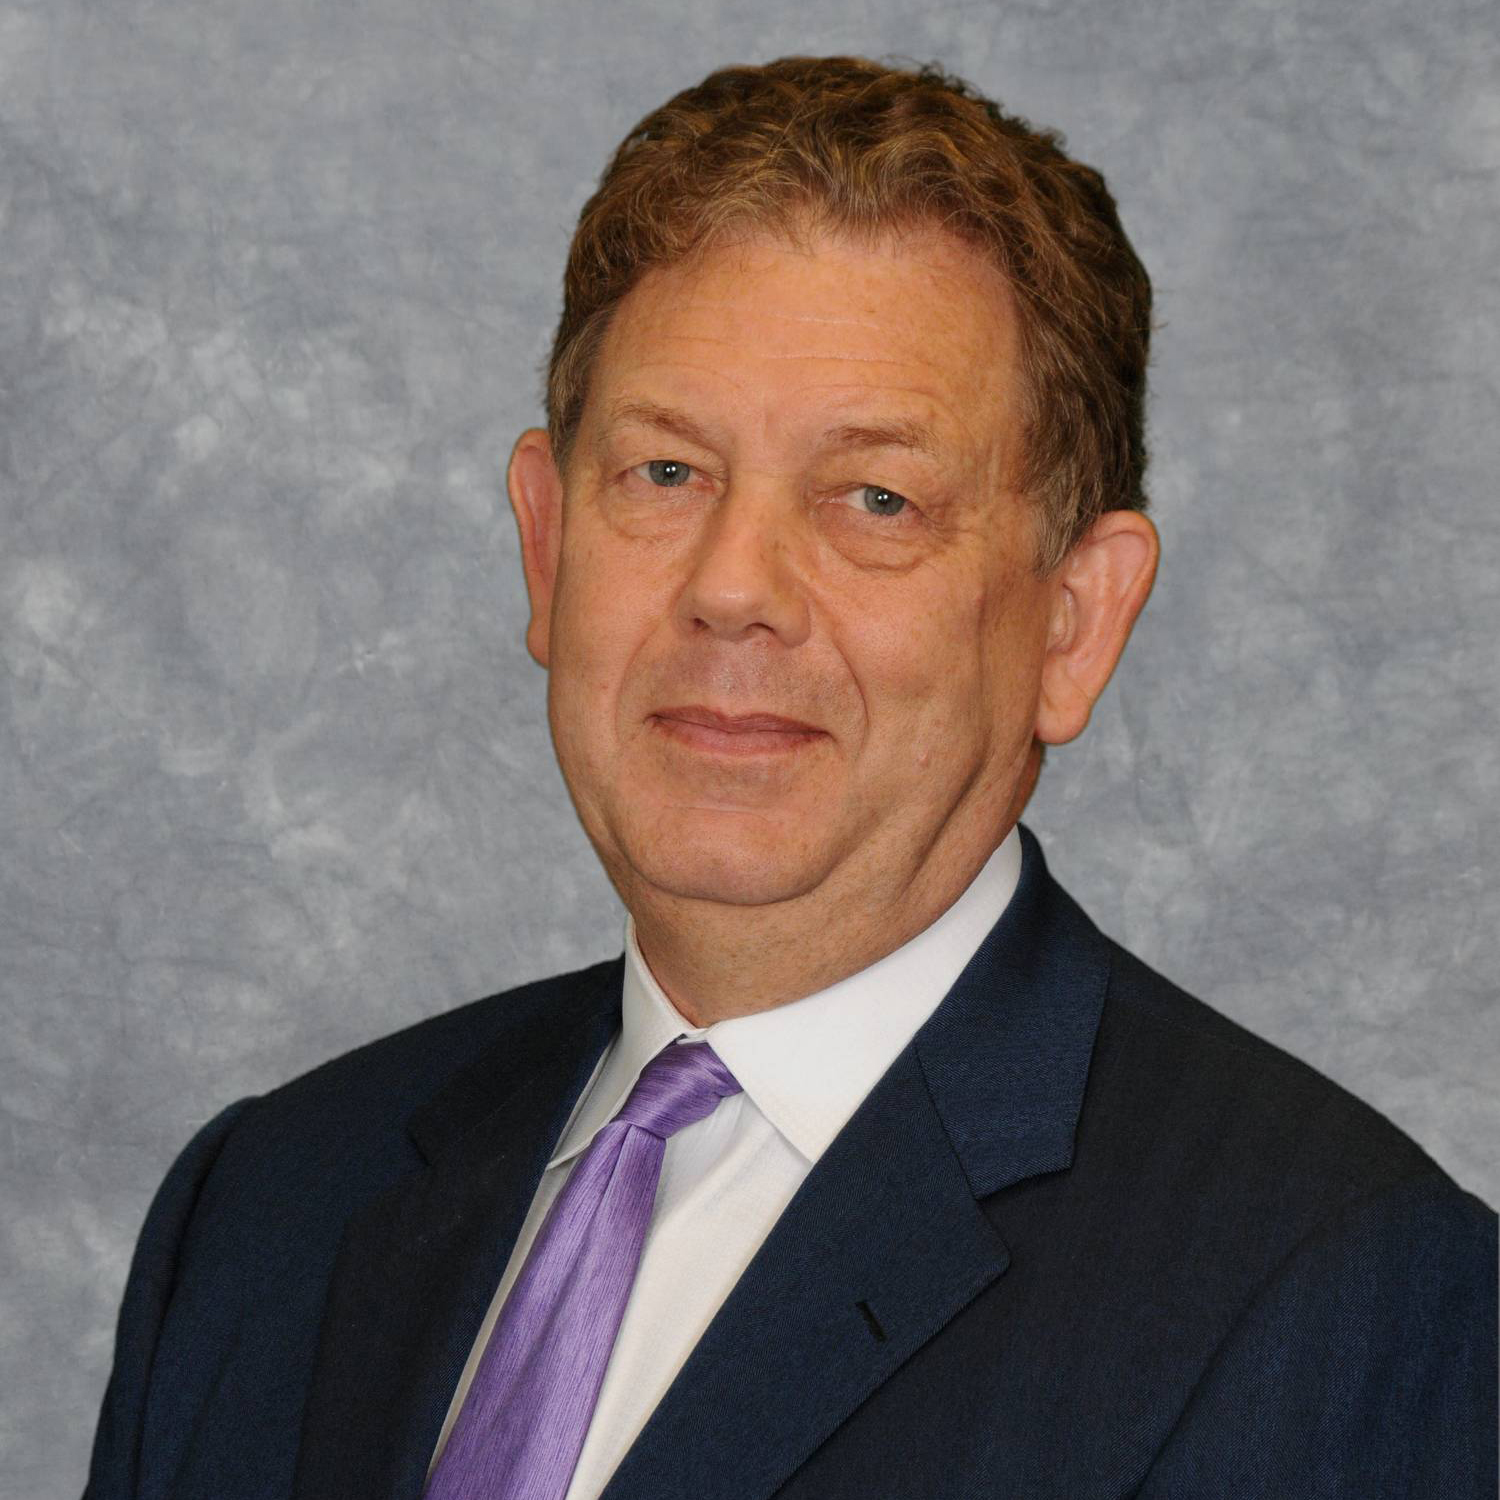 headshot of Dr. Alan Lumsden wearing a black suit and purple tie